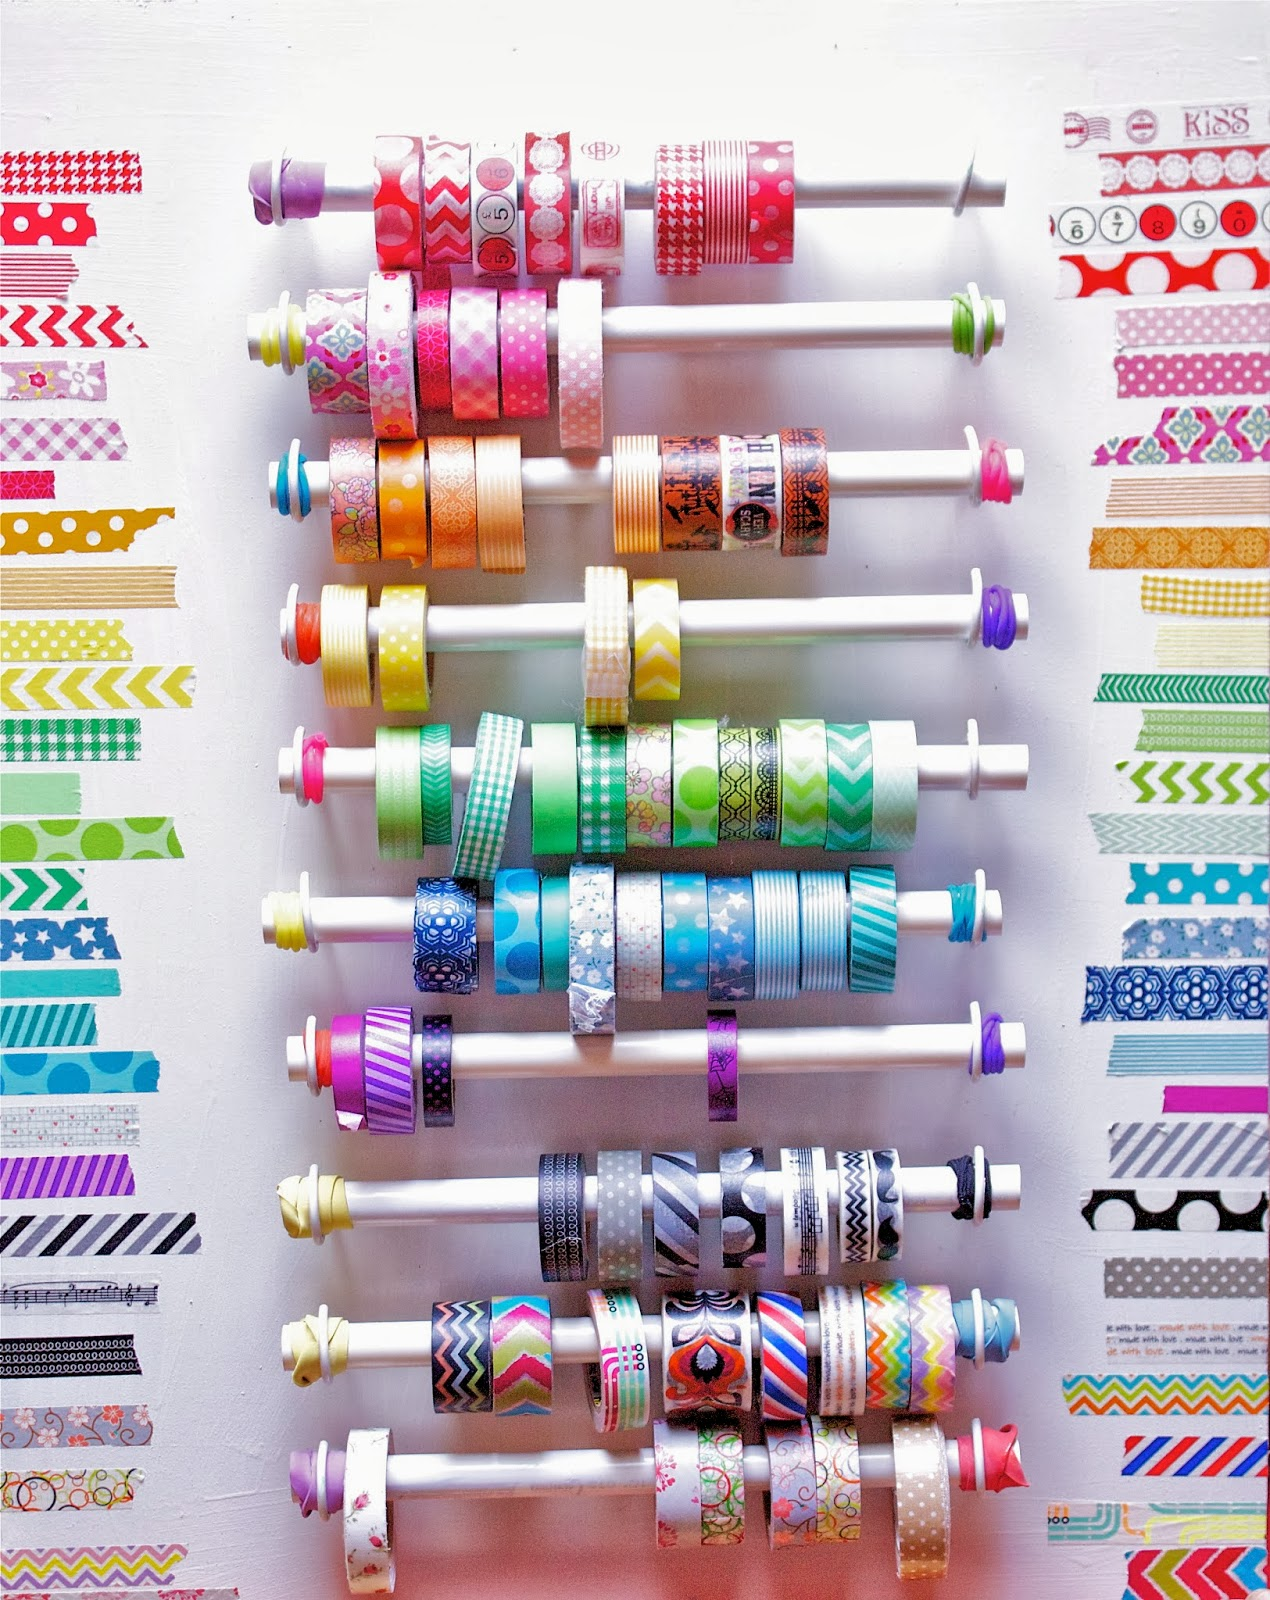 PVC Pipe Washi Tape Organizer